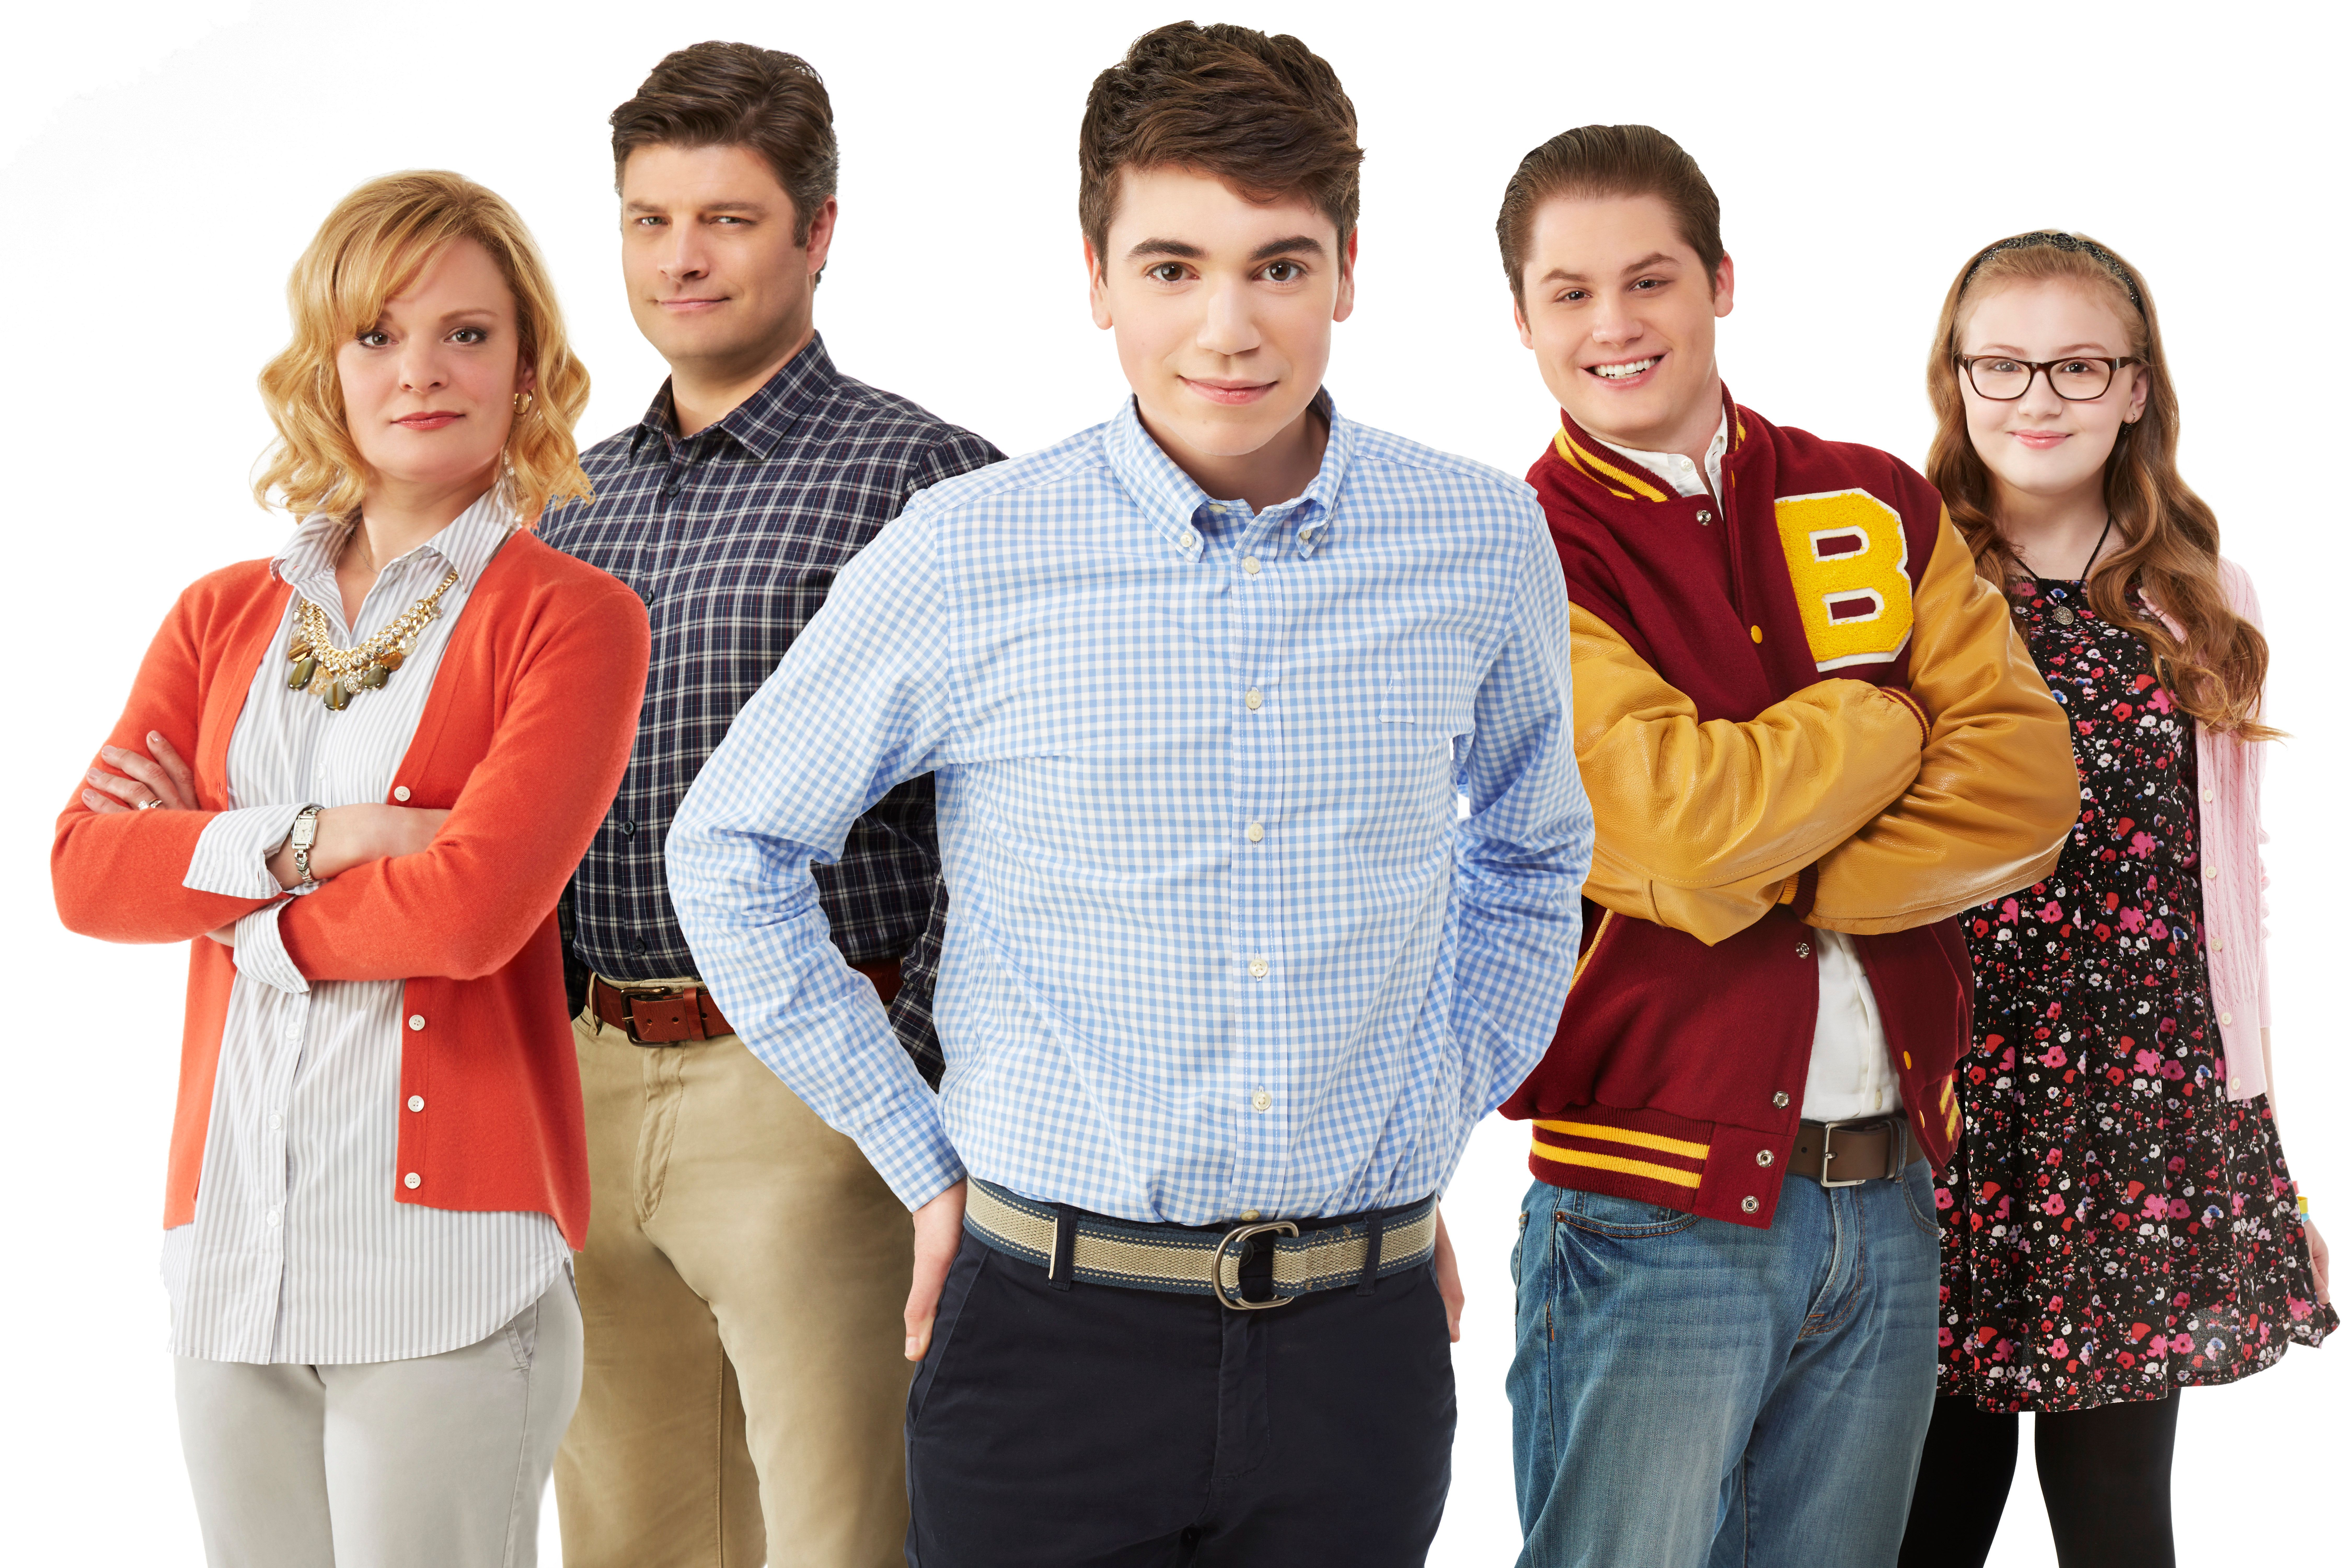 THE REAL O'NEALS - ABC's 'The Real O'Neals' stars Martha Plimpton as Eileen, Jay R. Ferguson as Pat, Noah Galvin as Kenny, Matthew Shively as Jimmy, Bebe Wood as Shannon and Mary Hollis Inboden as Jodi. (Photo by Kevin Foley/ABC via Getty Images)